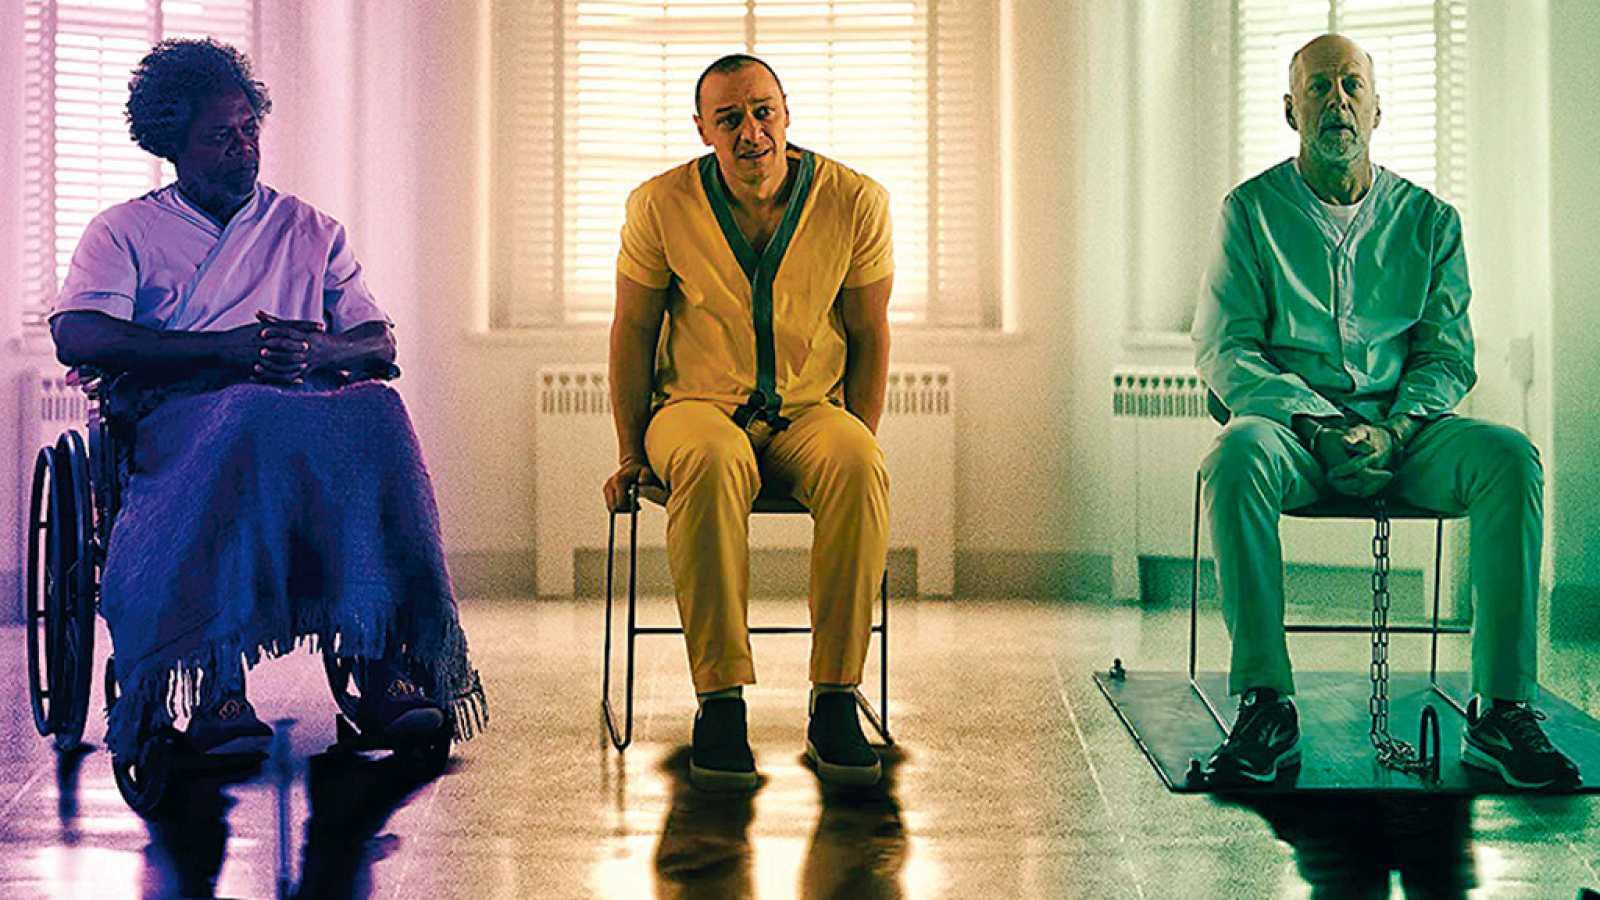 Tráiler de 'Glass', de M. Night Shyamalan